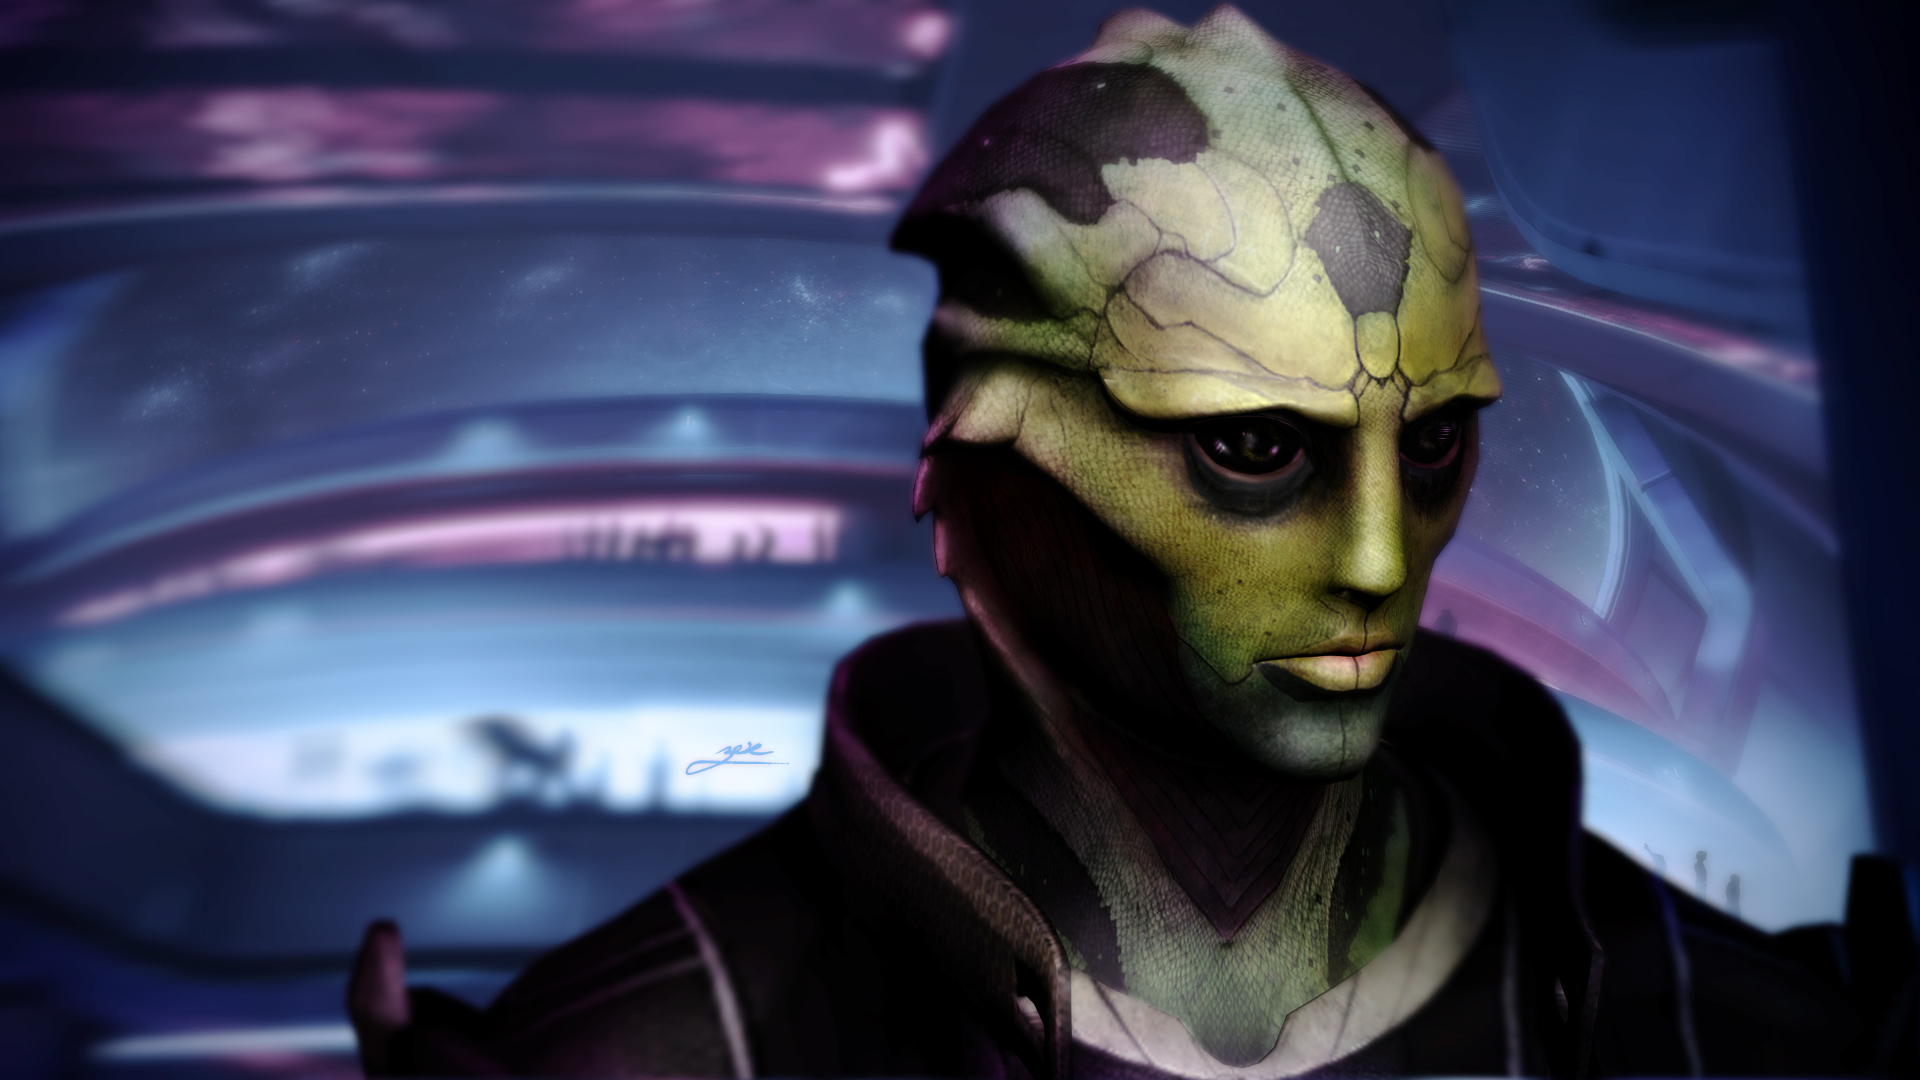 Thane by ZoeDemar